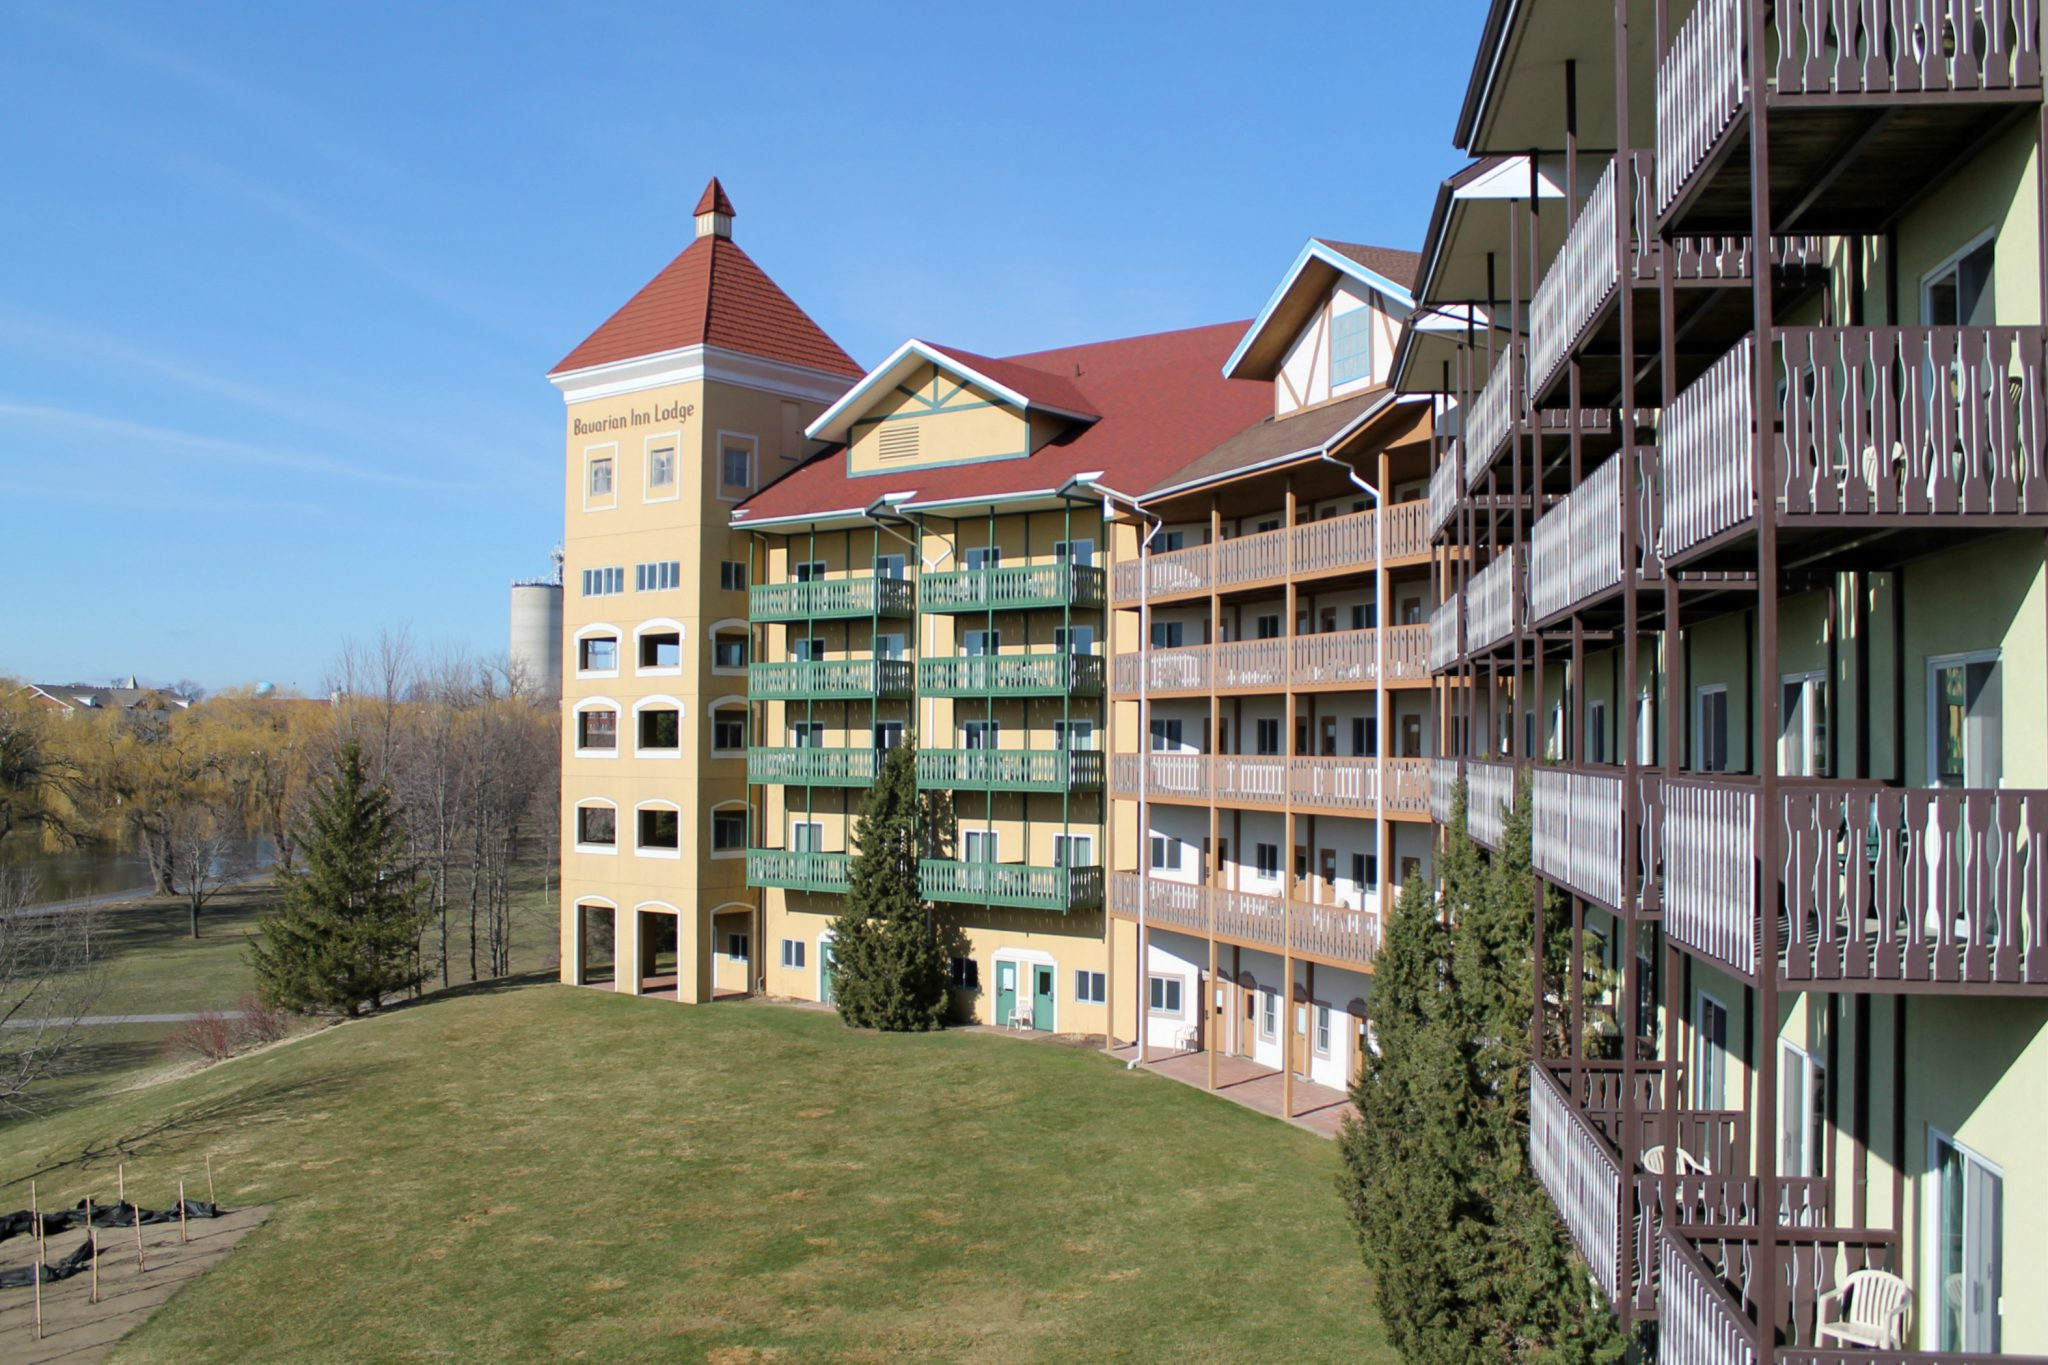 Family Travel at the Bavarian Inn Lodge in Frankenmuth, Michigan